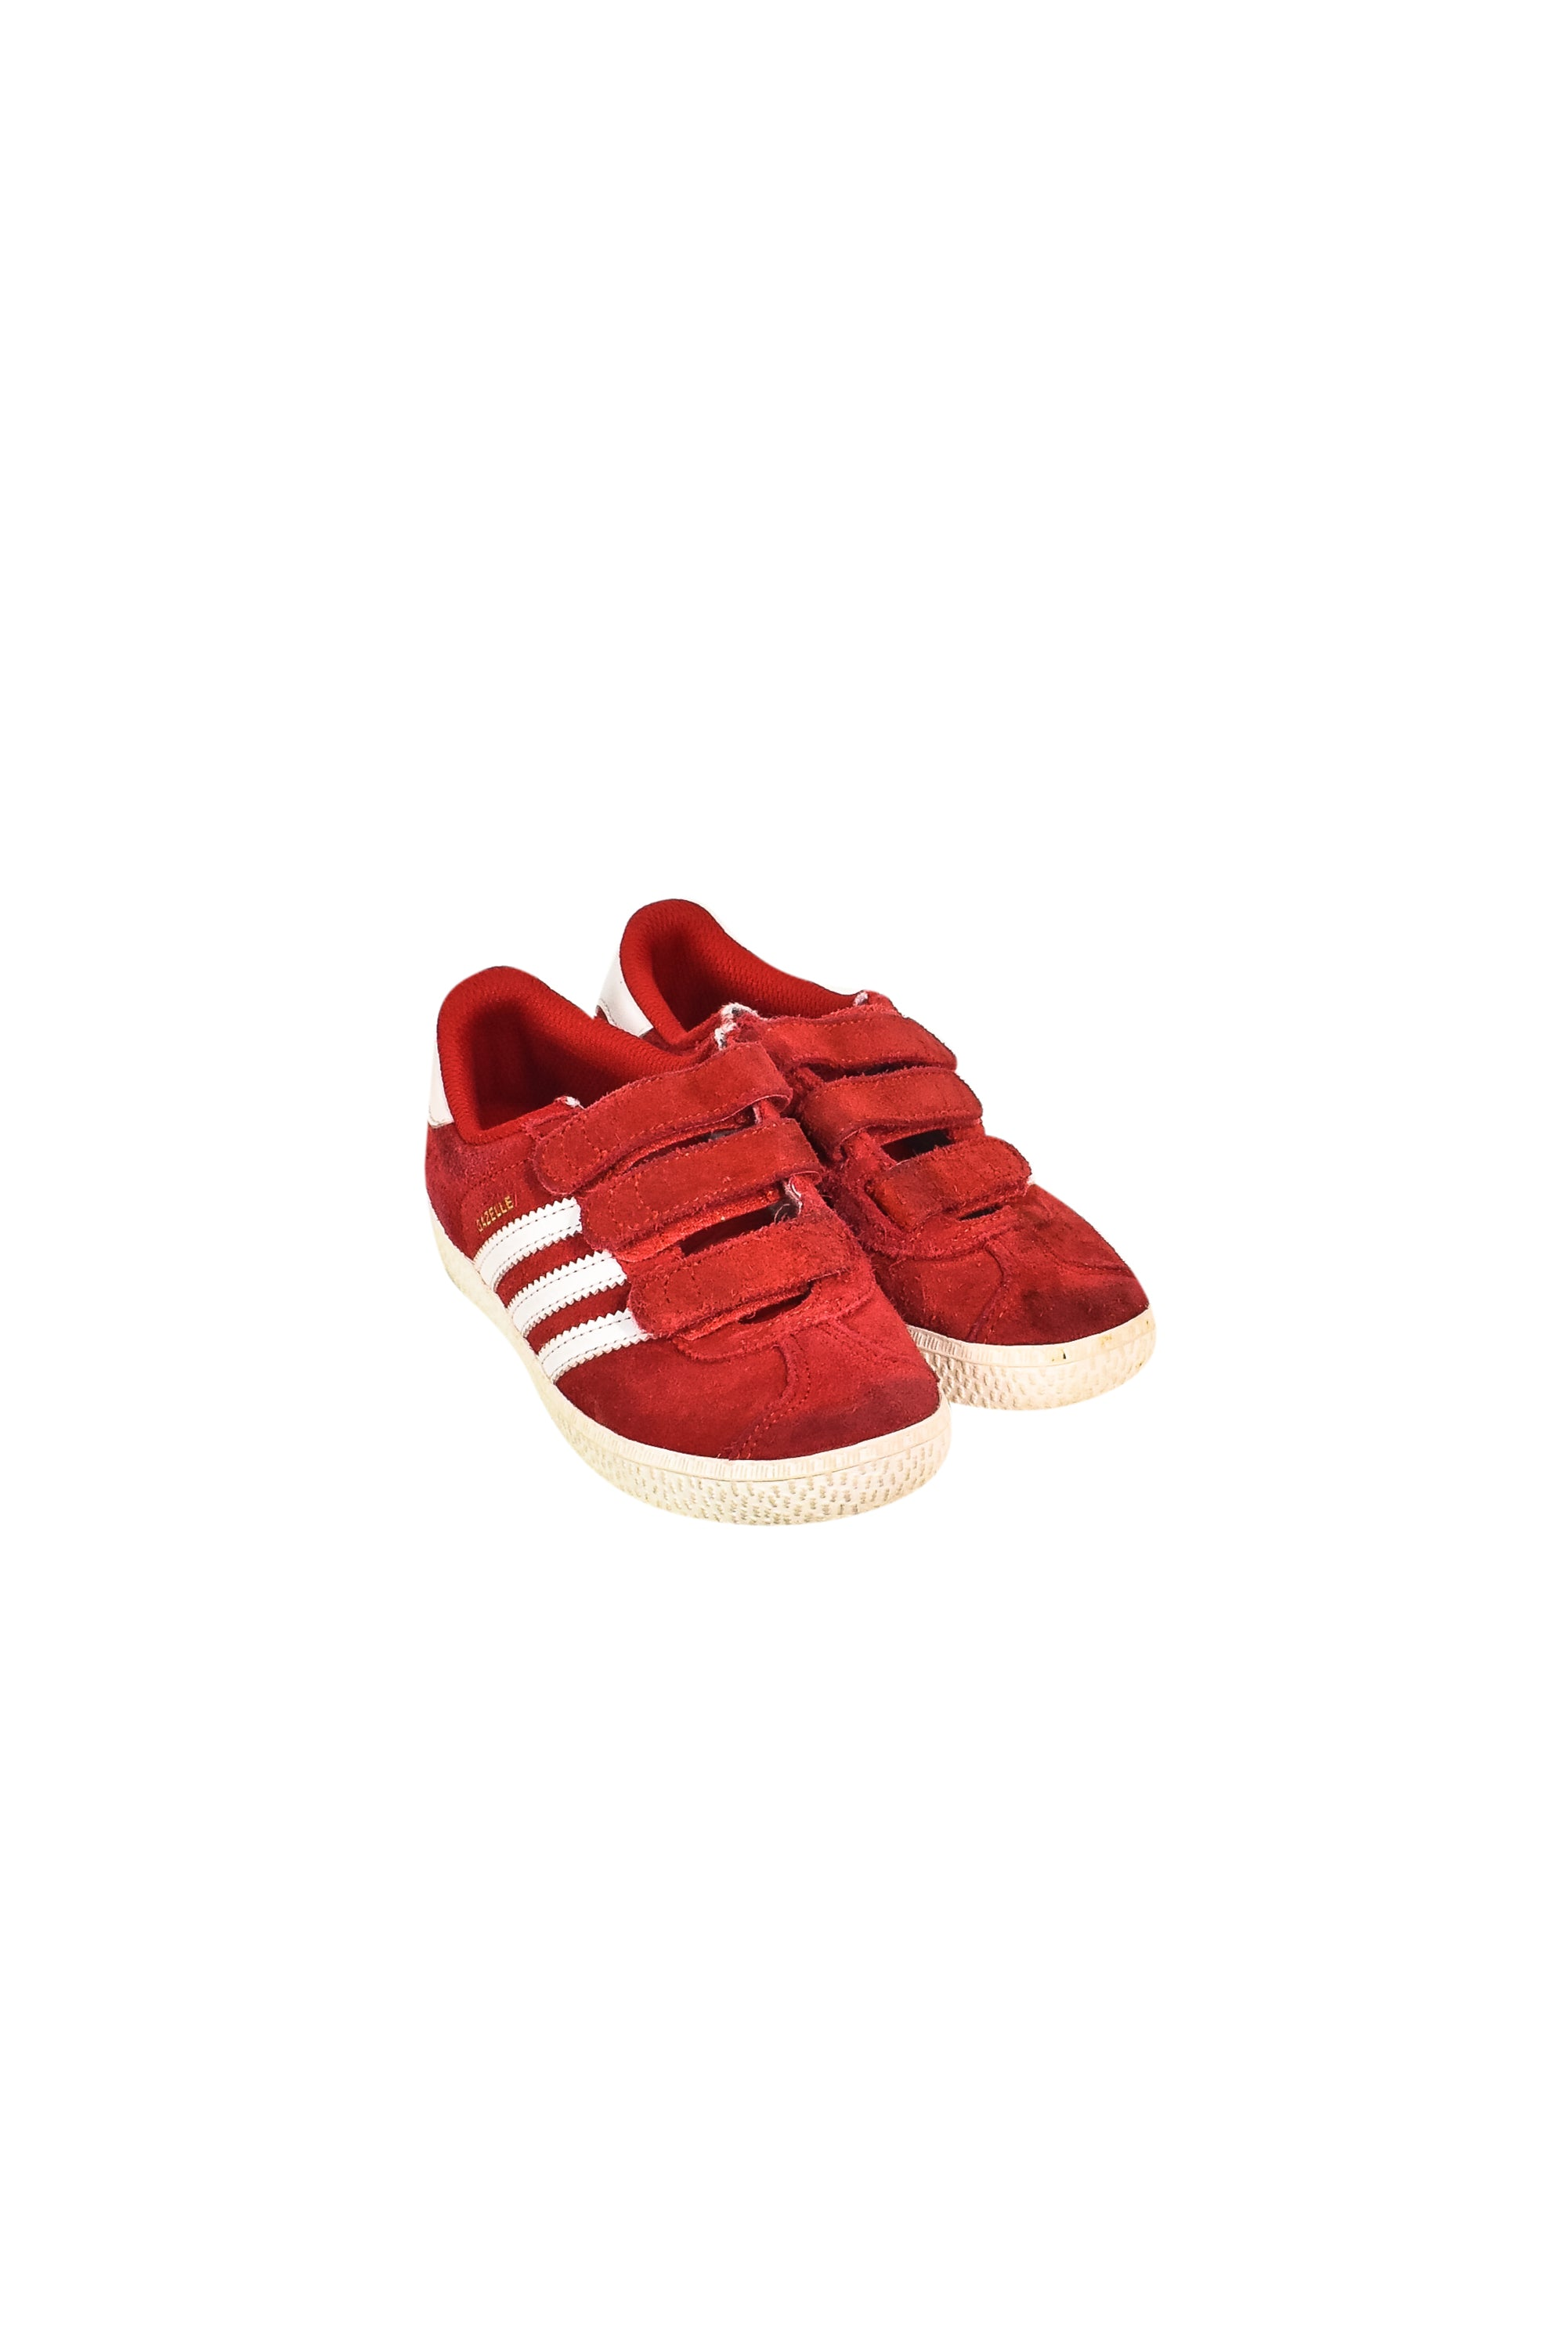 10040953 Adidas Kids~Shoes 5T (EU 29) at Retykle